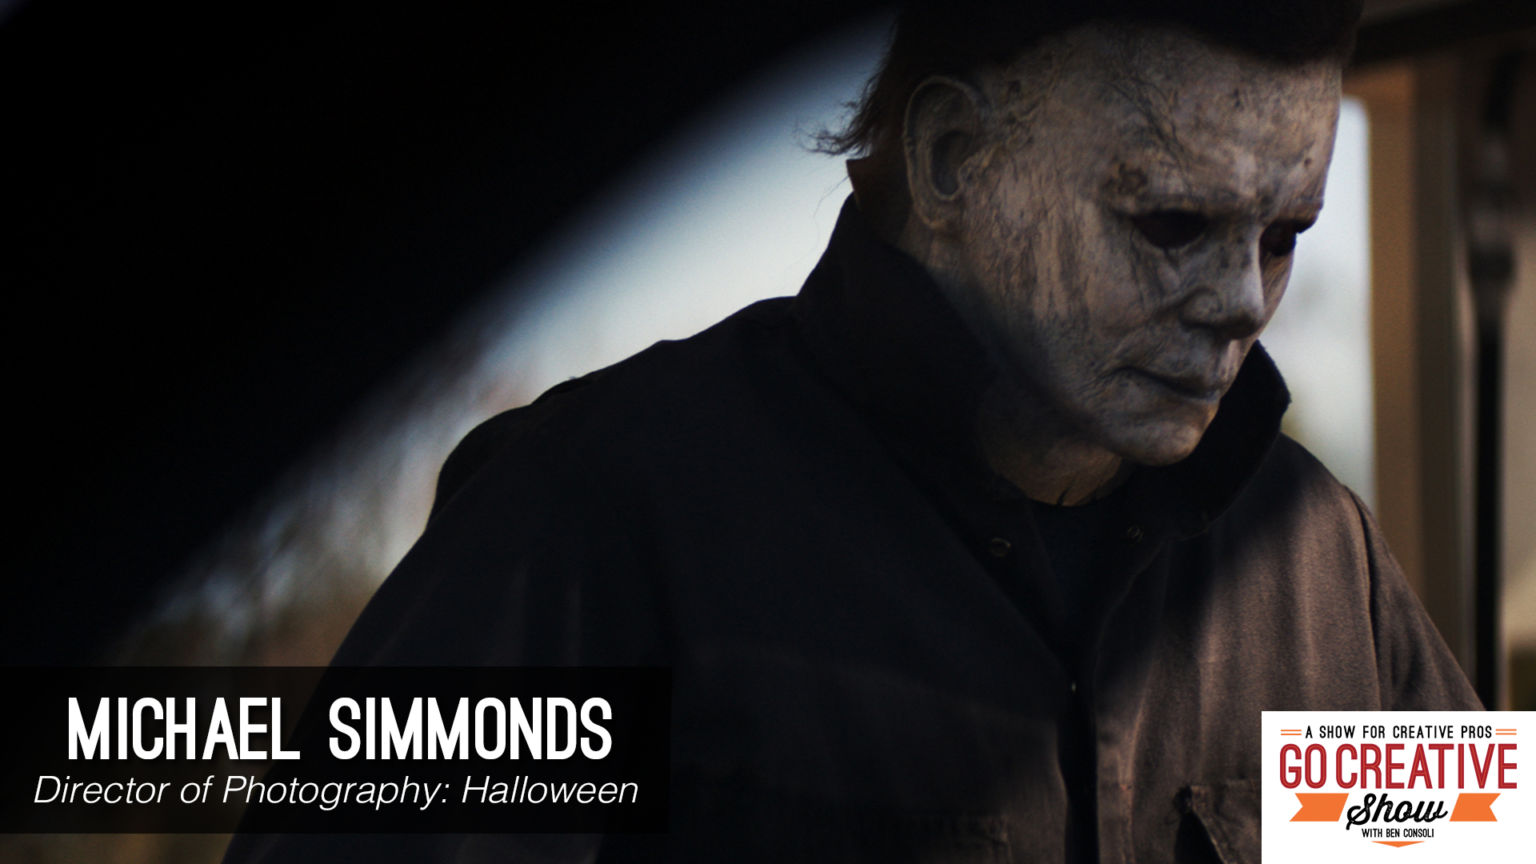 The Go Creative Show : Michael Simmonds talking about the cinematography of Halloween